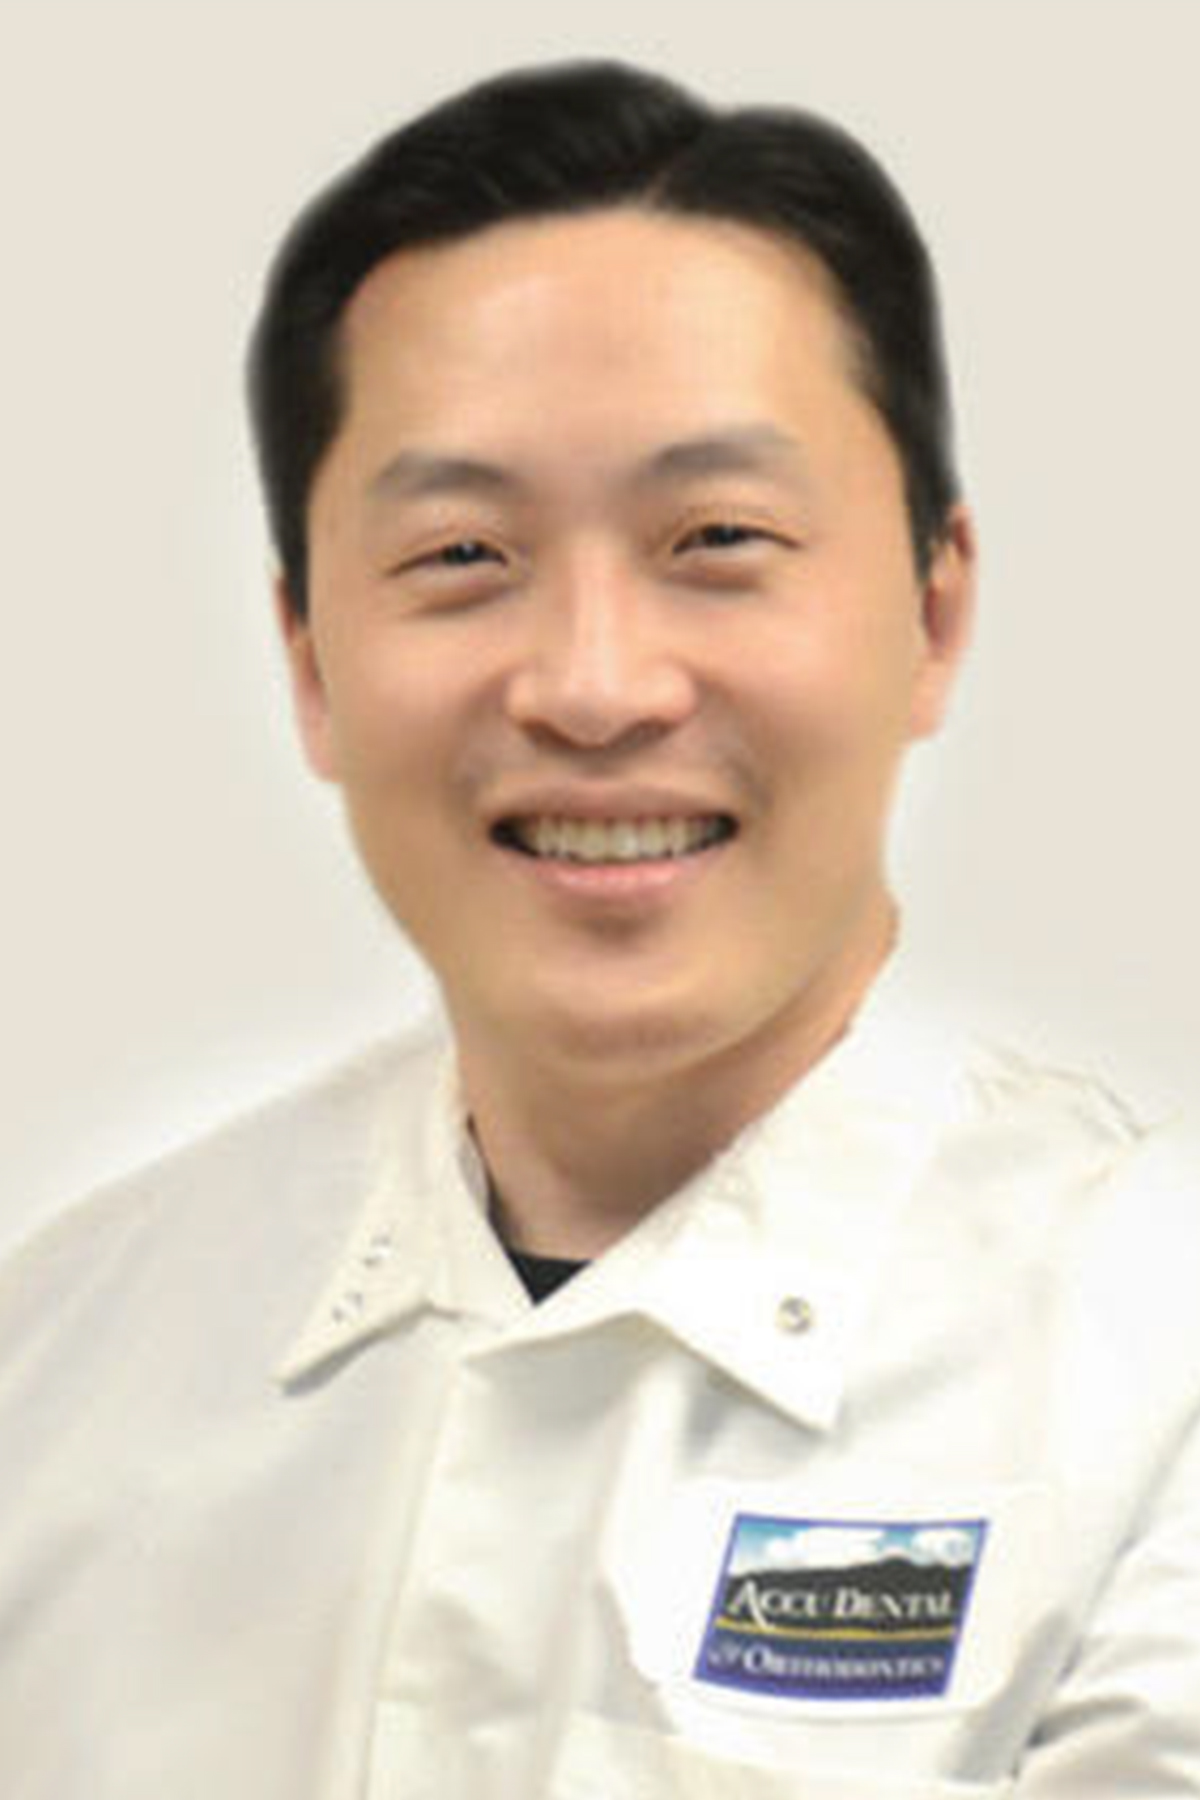 Dr. Yeon Kim D.D.S. General Dentist